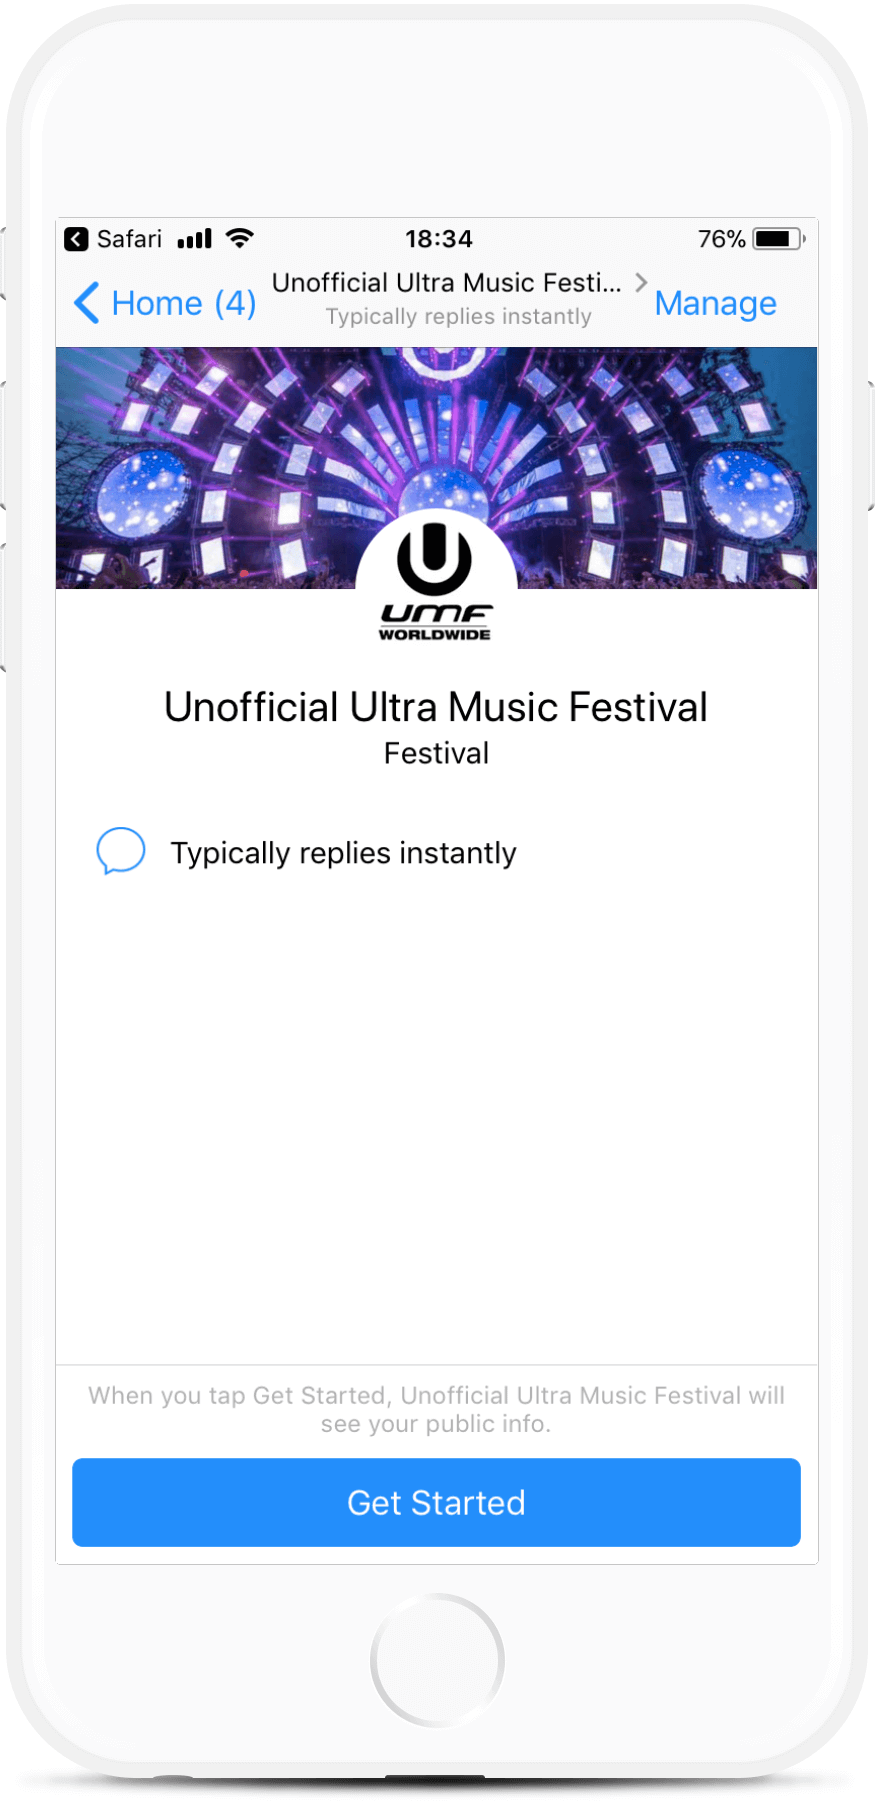 Festival and Event Messenger Bot